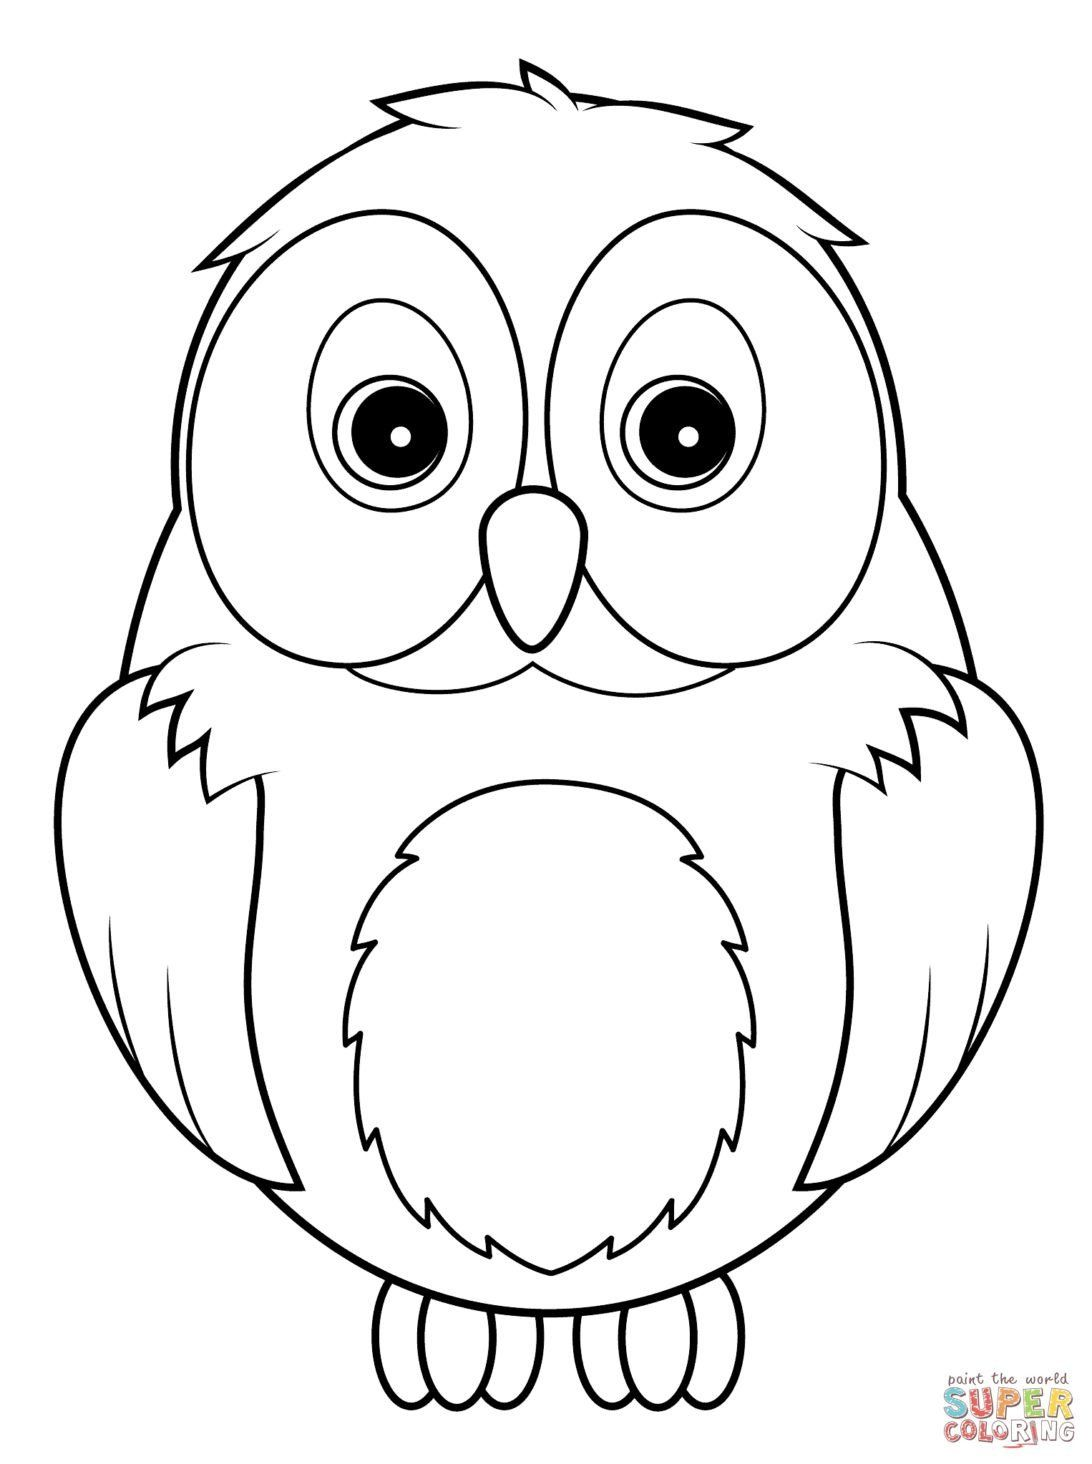 Cute Baby Owl Coloring Pages 12 Most Perfect Free Cute Owl Coloring Pages Print Tures And In 2020 Owls Drawing Owl Coloring Pages Animal Coloring Pages